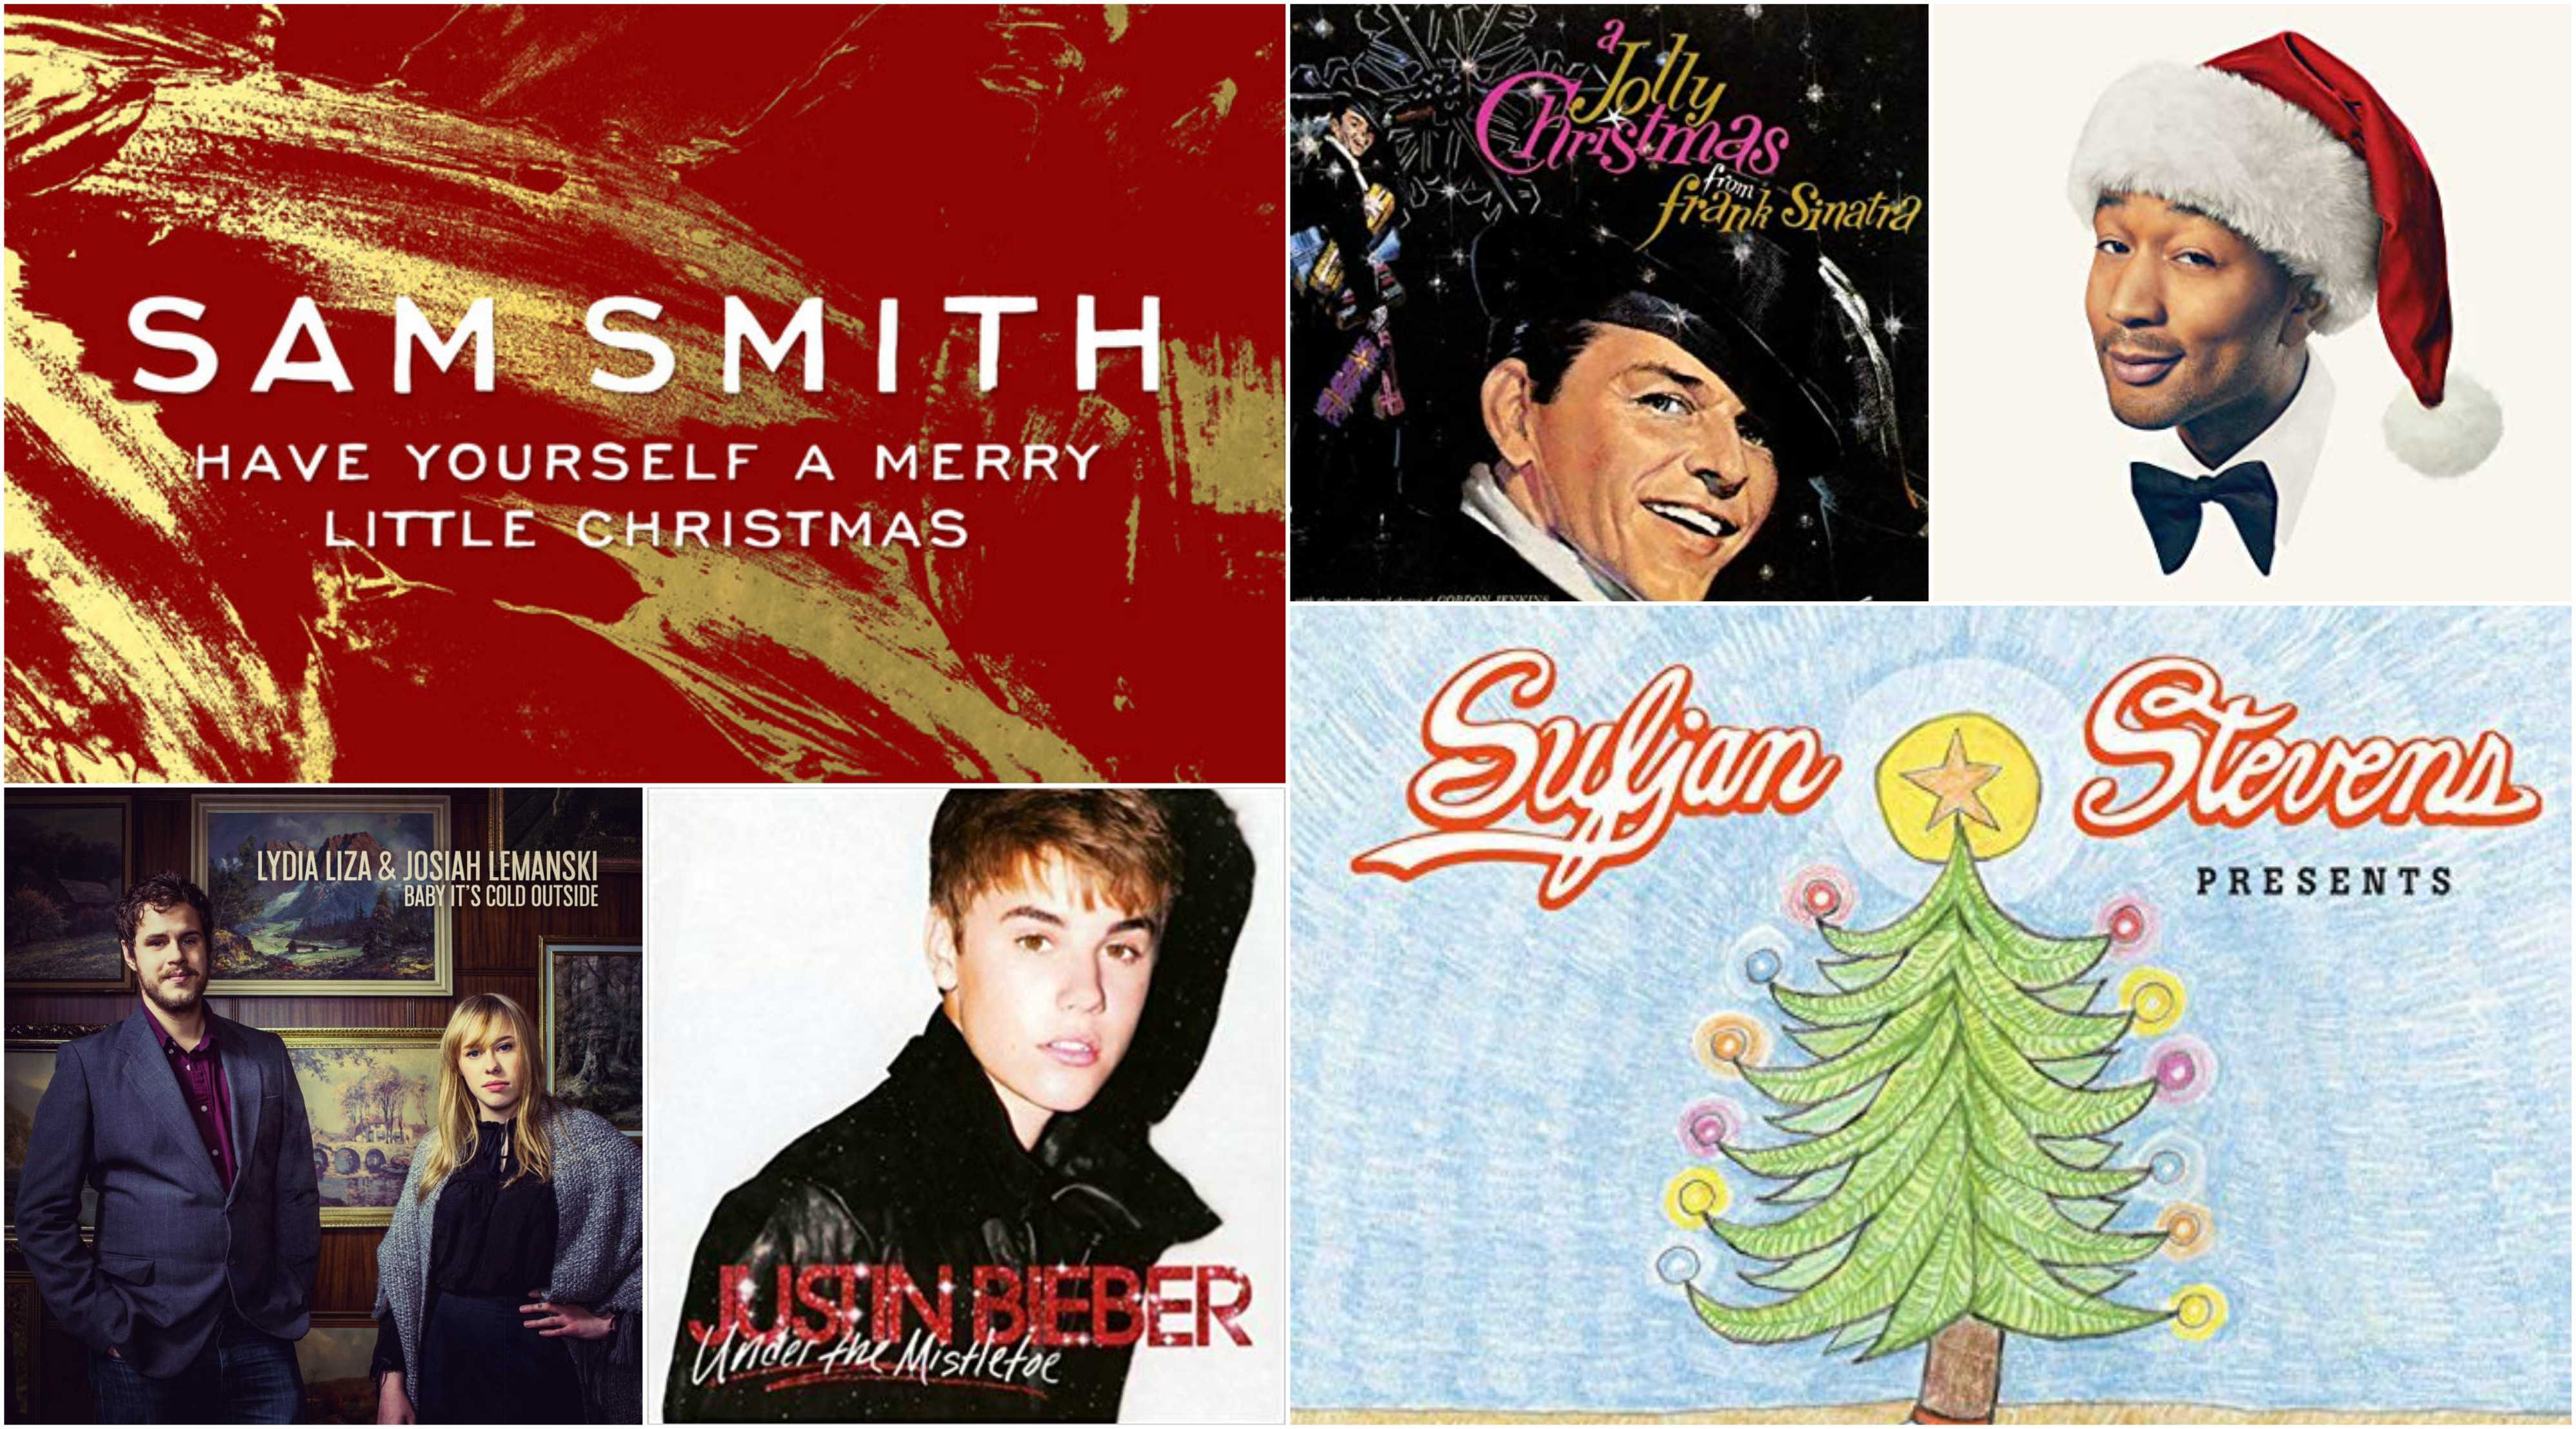 These Christmas albums are the perfect addition to any holiday celebration or winter day. Credit: Various artists